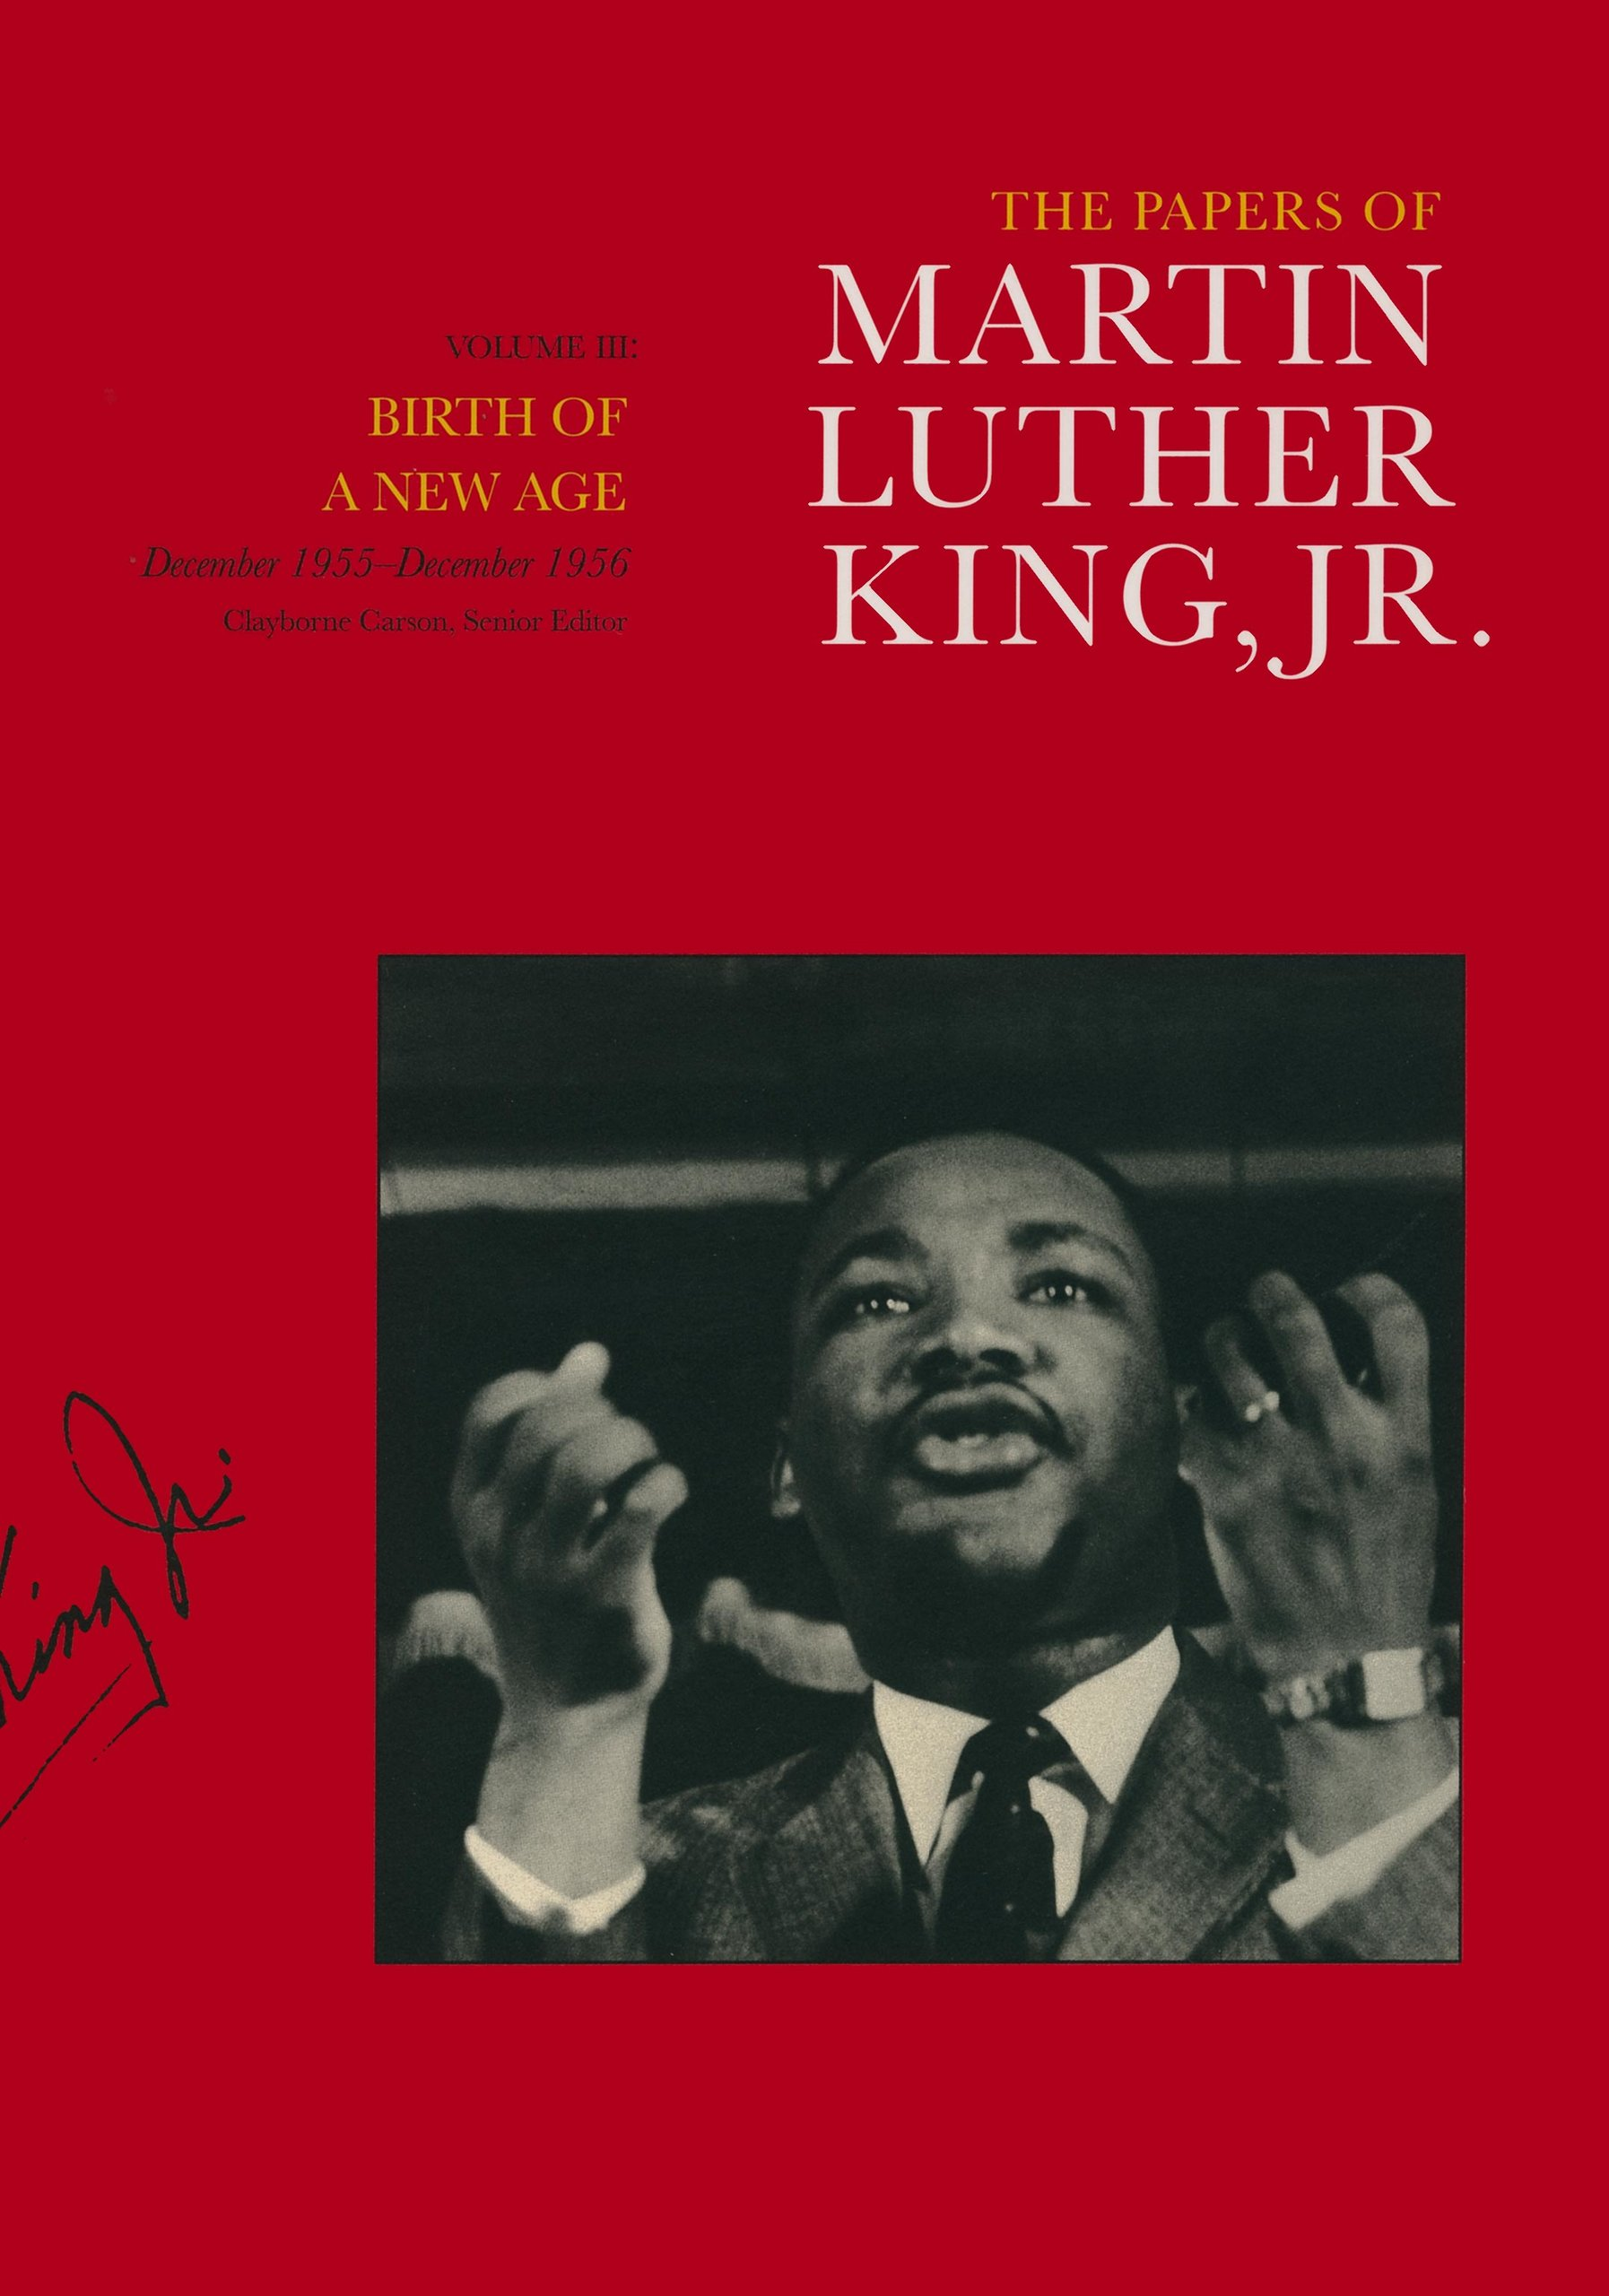 Martin luther king jr date of birth